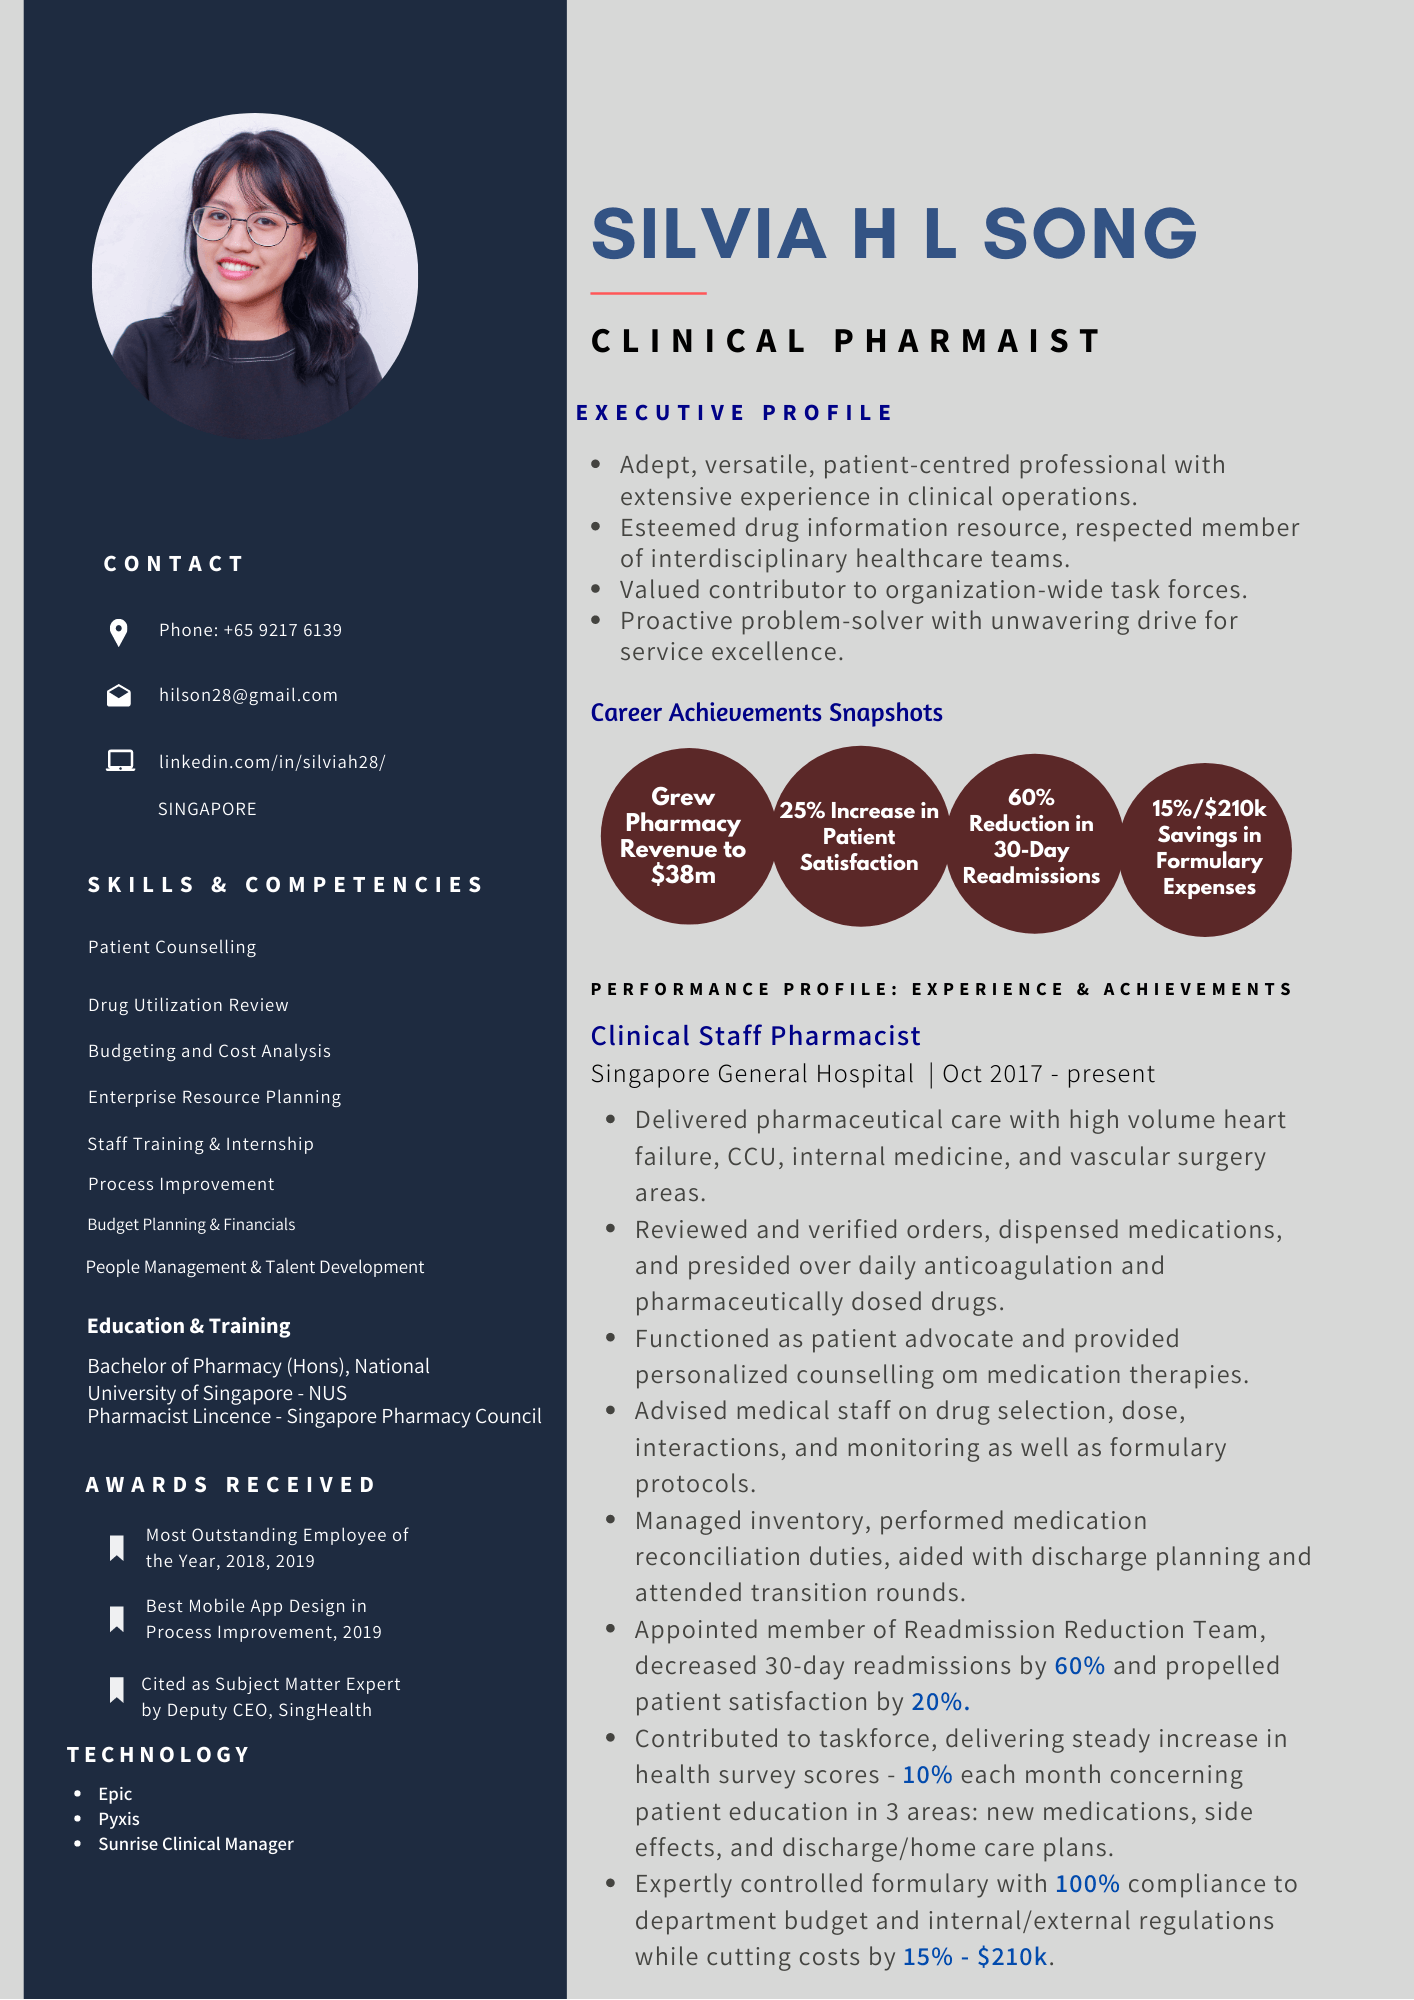 Silvia H L Song Clinical Pharmacist Resume